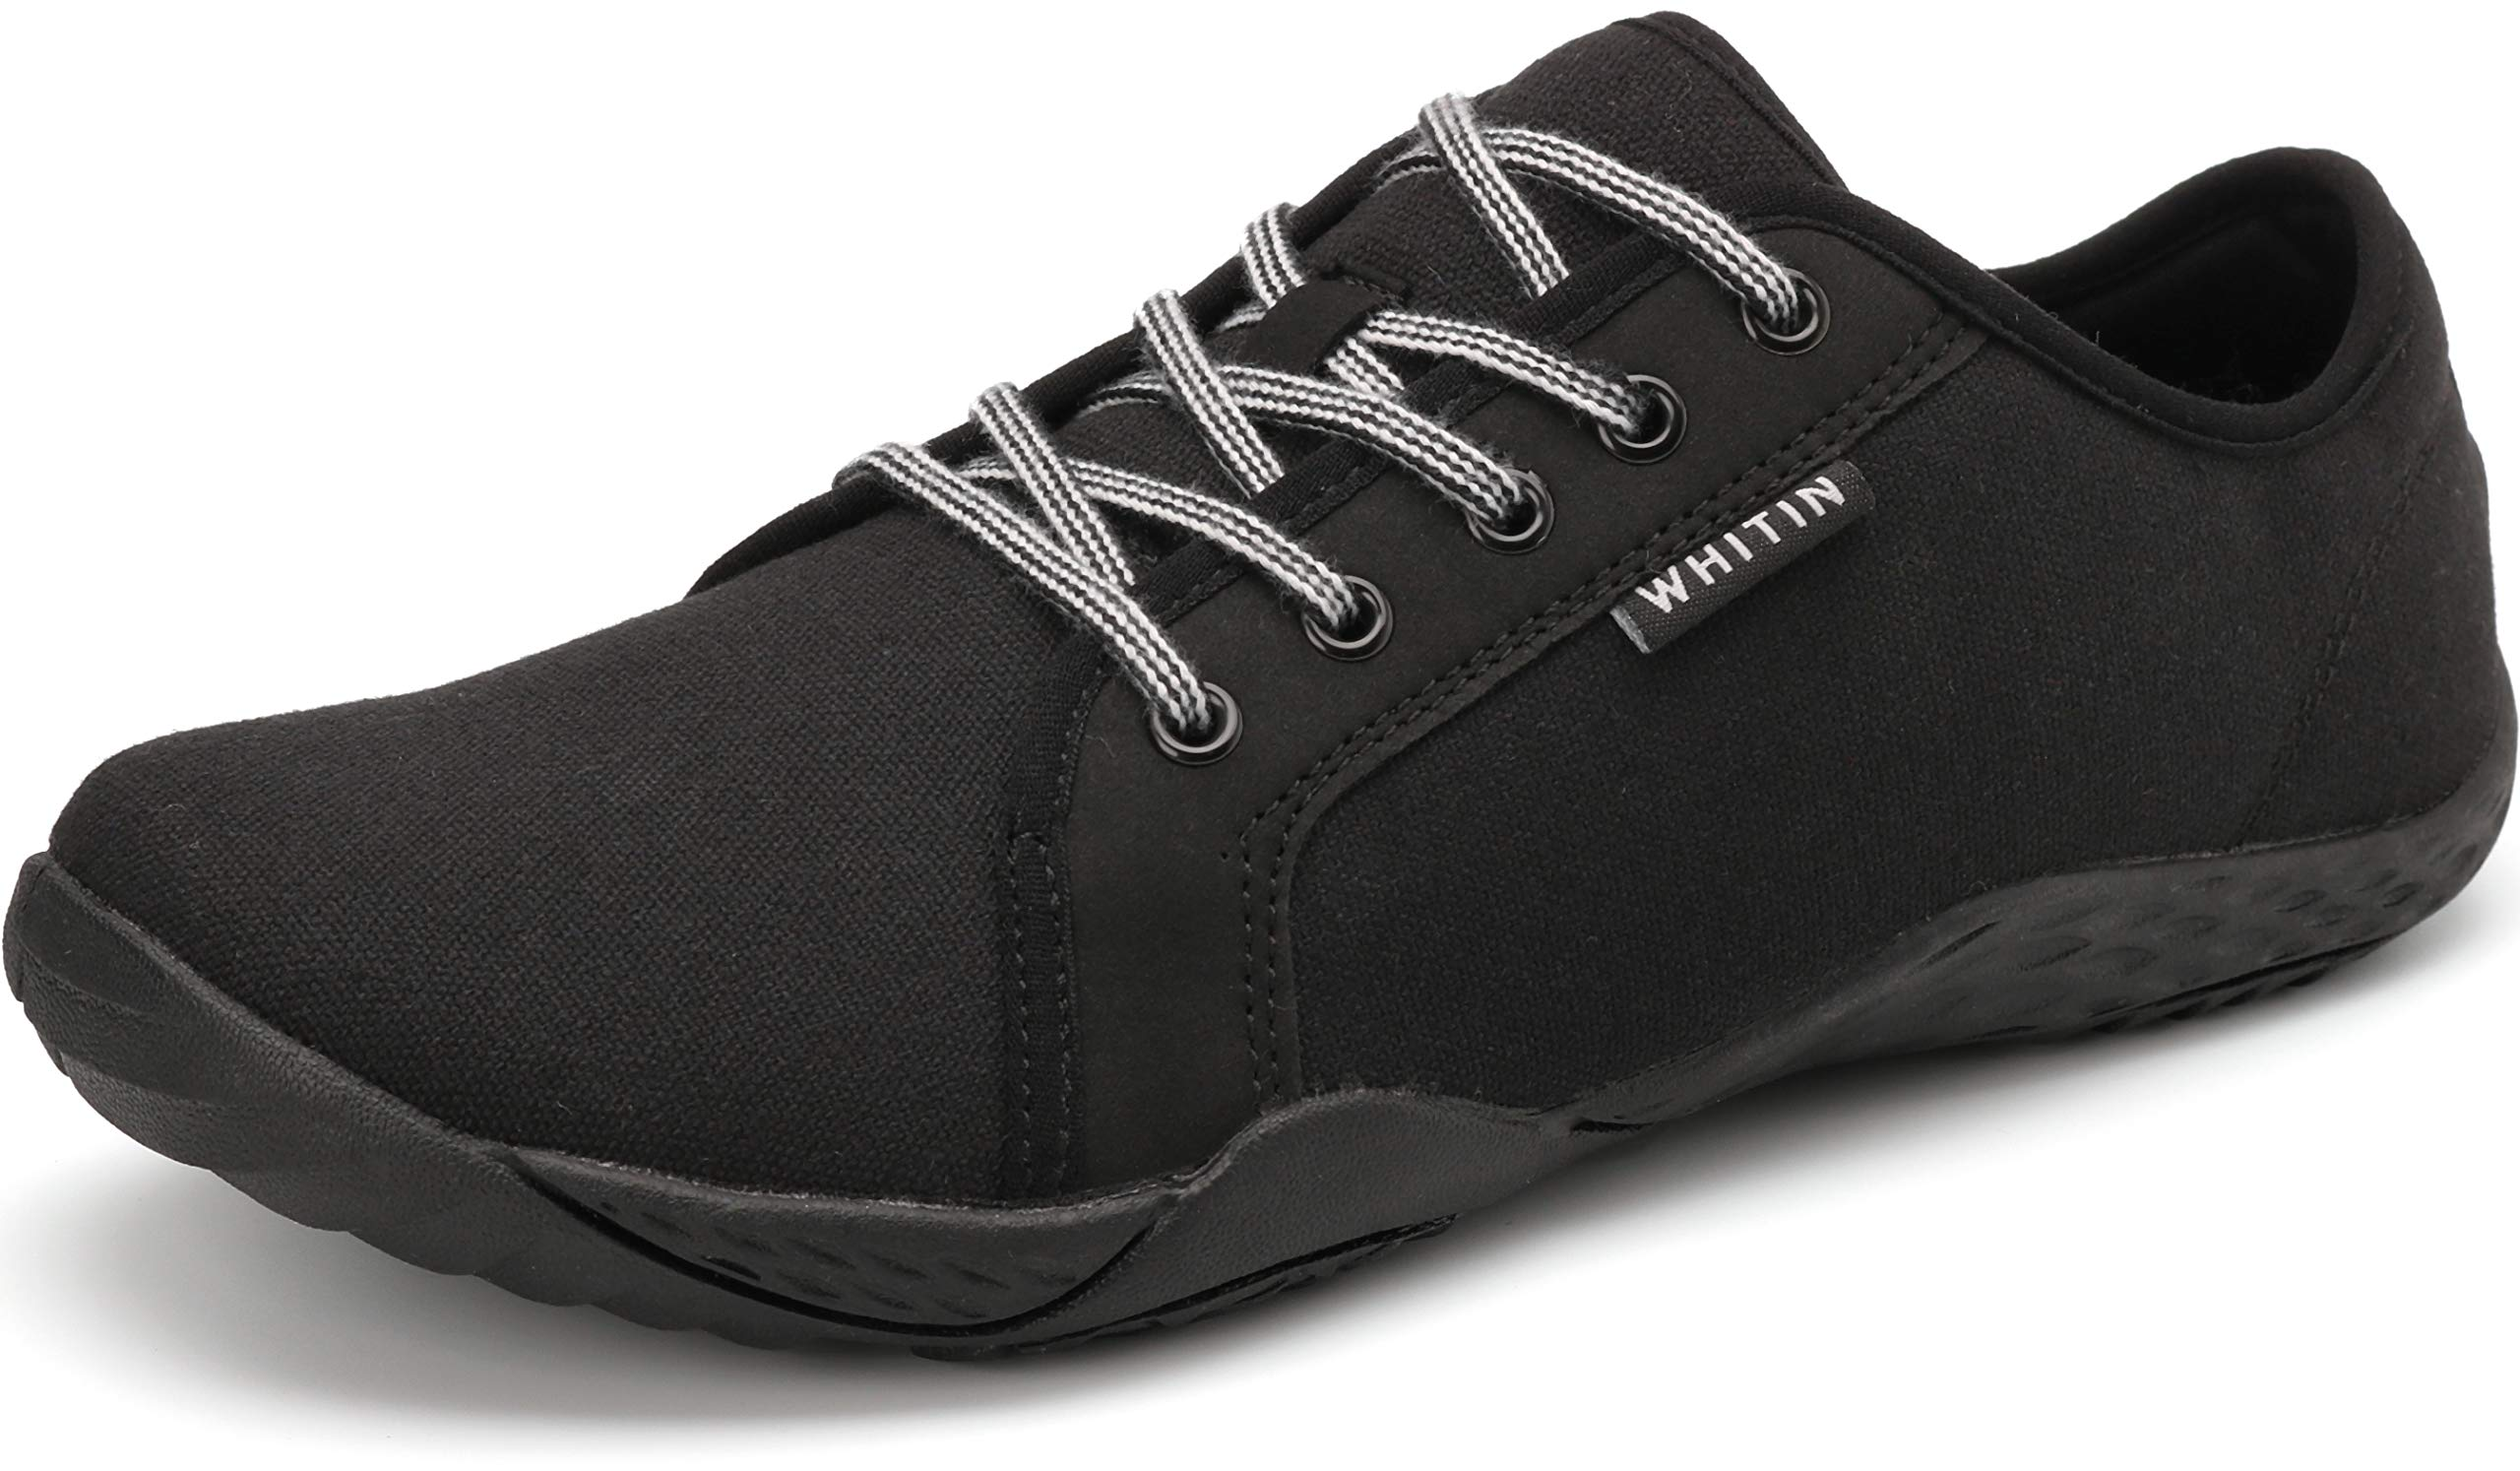 WHITIN Women's Canvas Minimalist Barefoot Sneakers - Arch Support - Lace Up Wide Fit